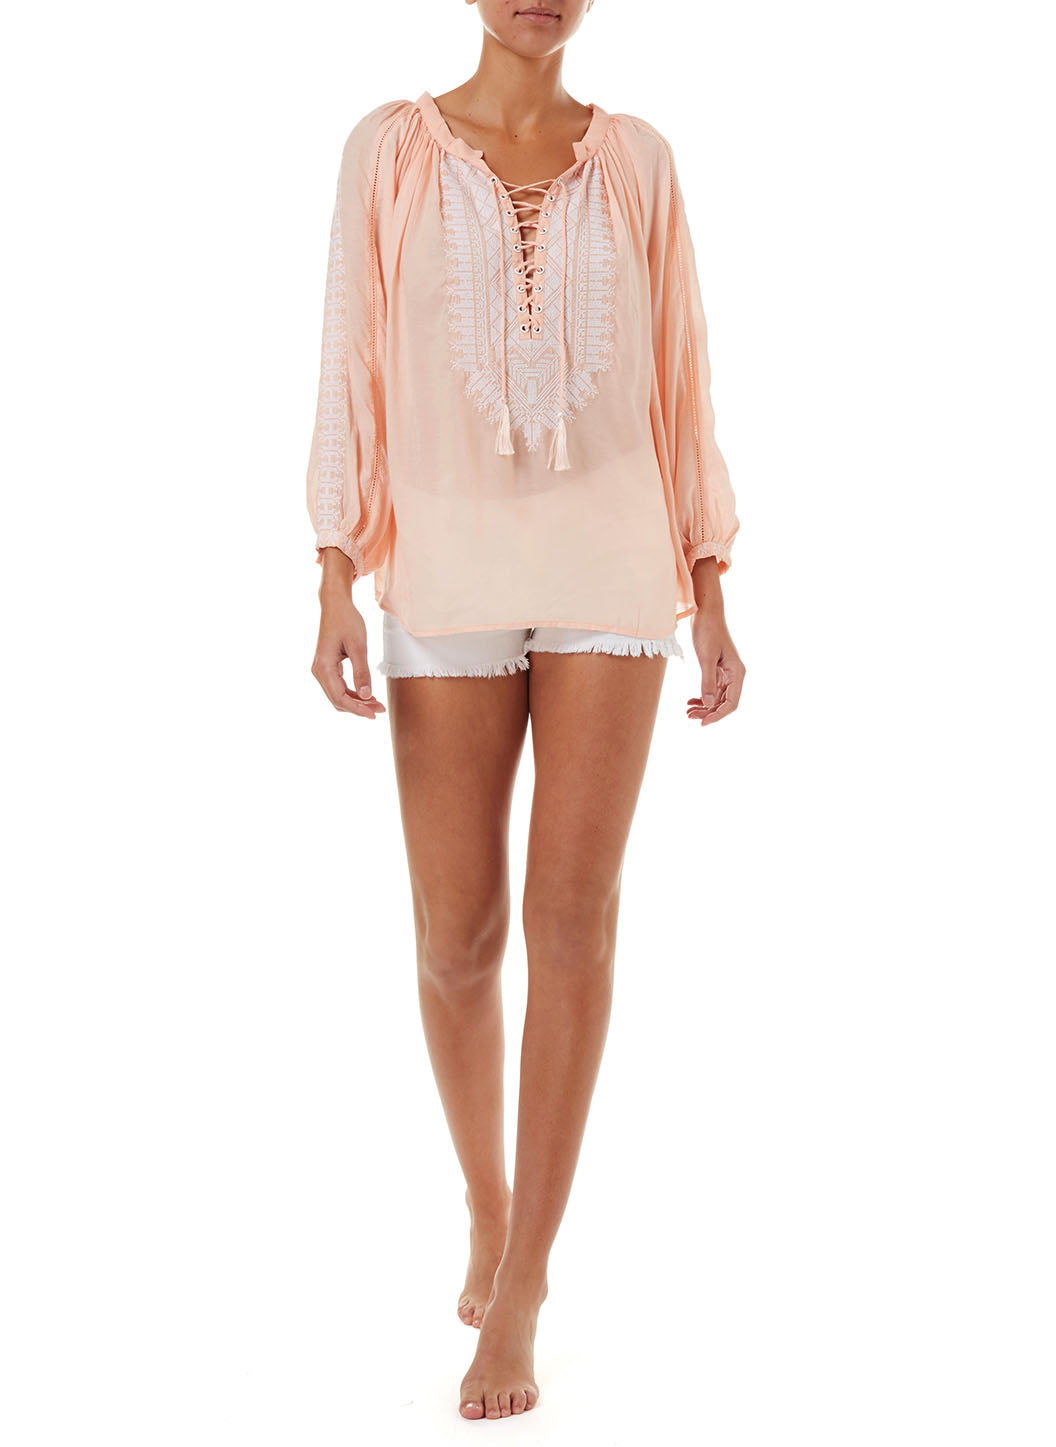 Simona Peach Lace-Up Embroidered Blouse